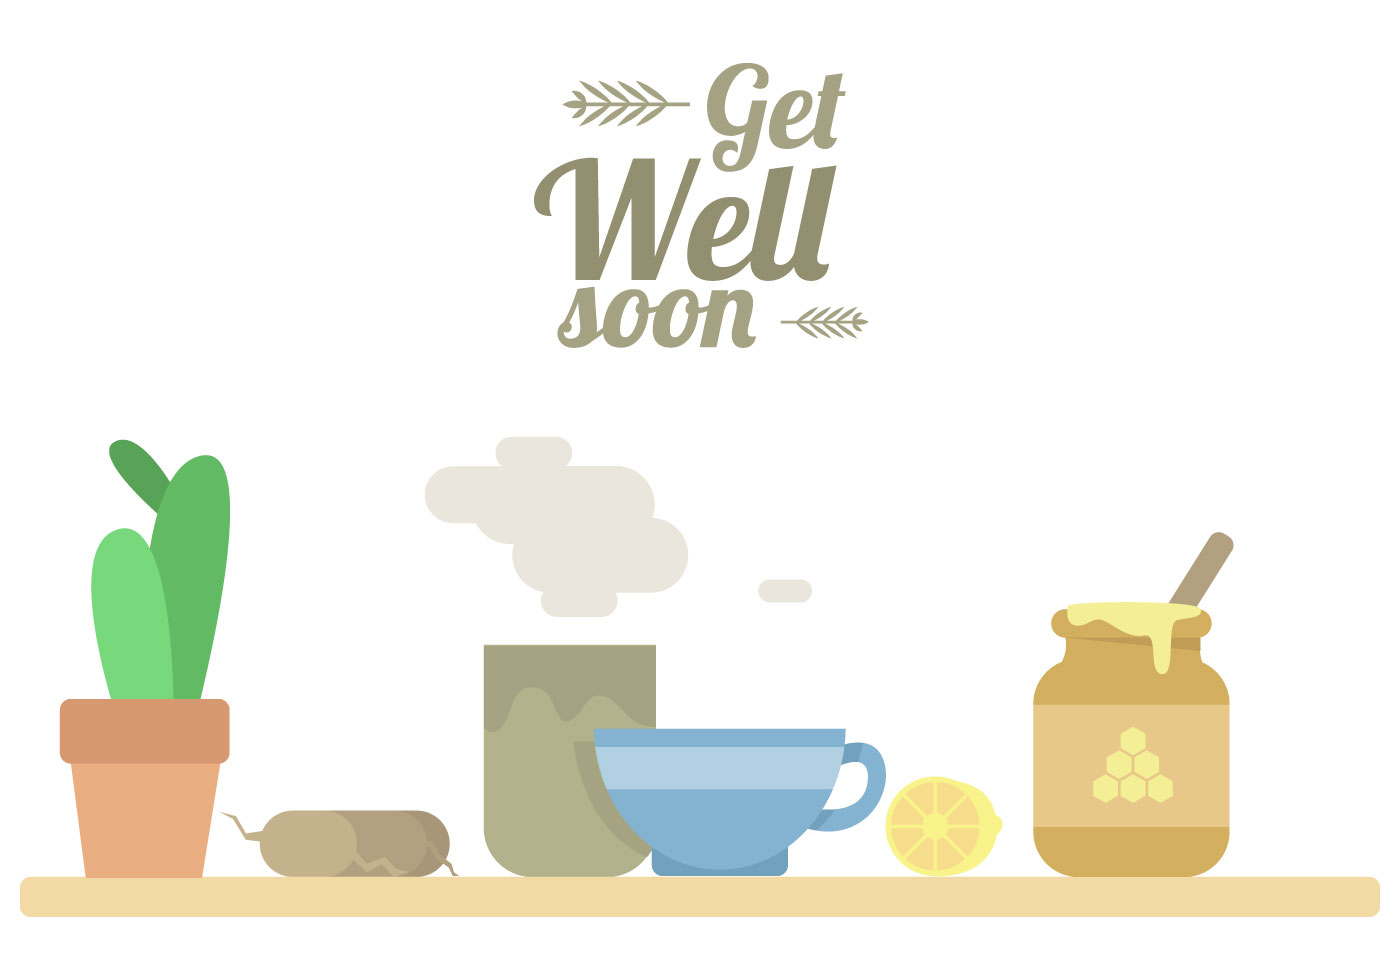 Get Well Soon Cards Free Vector Art 22330 Free Downloads